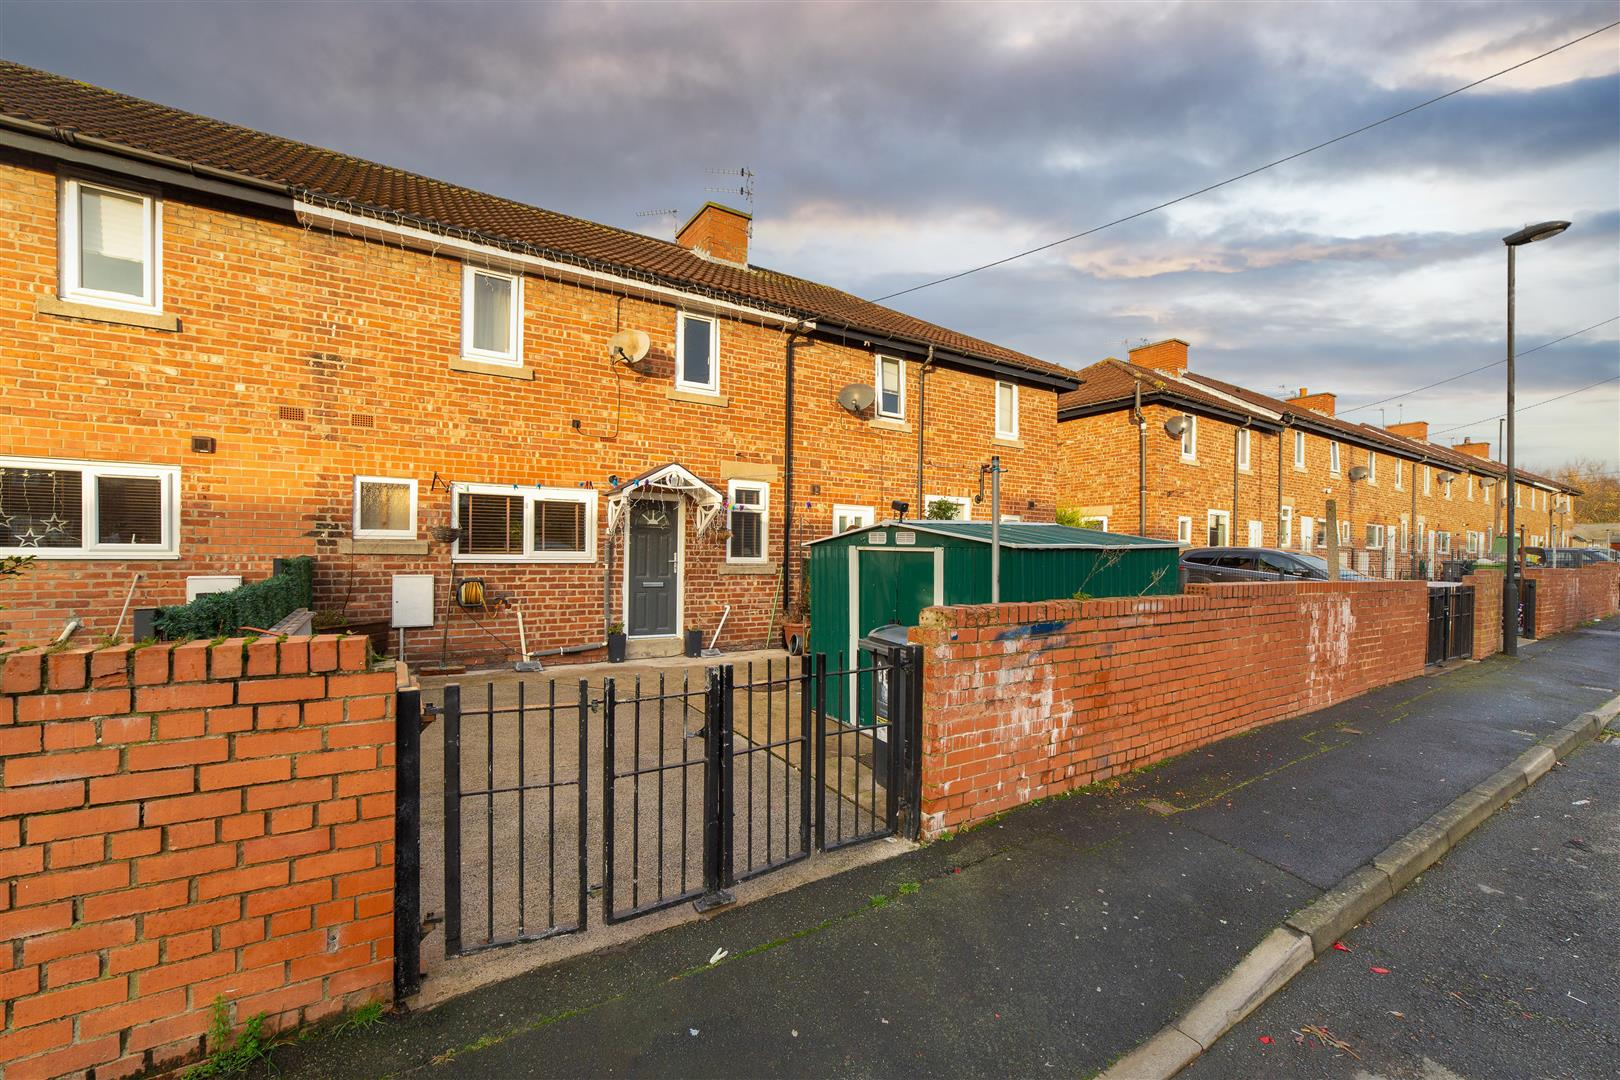 3 bed terraced house for sale in Seaton Burn, NE13 6HG  - Property Image 1